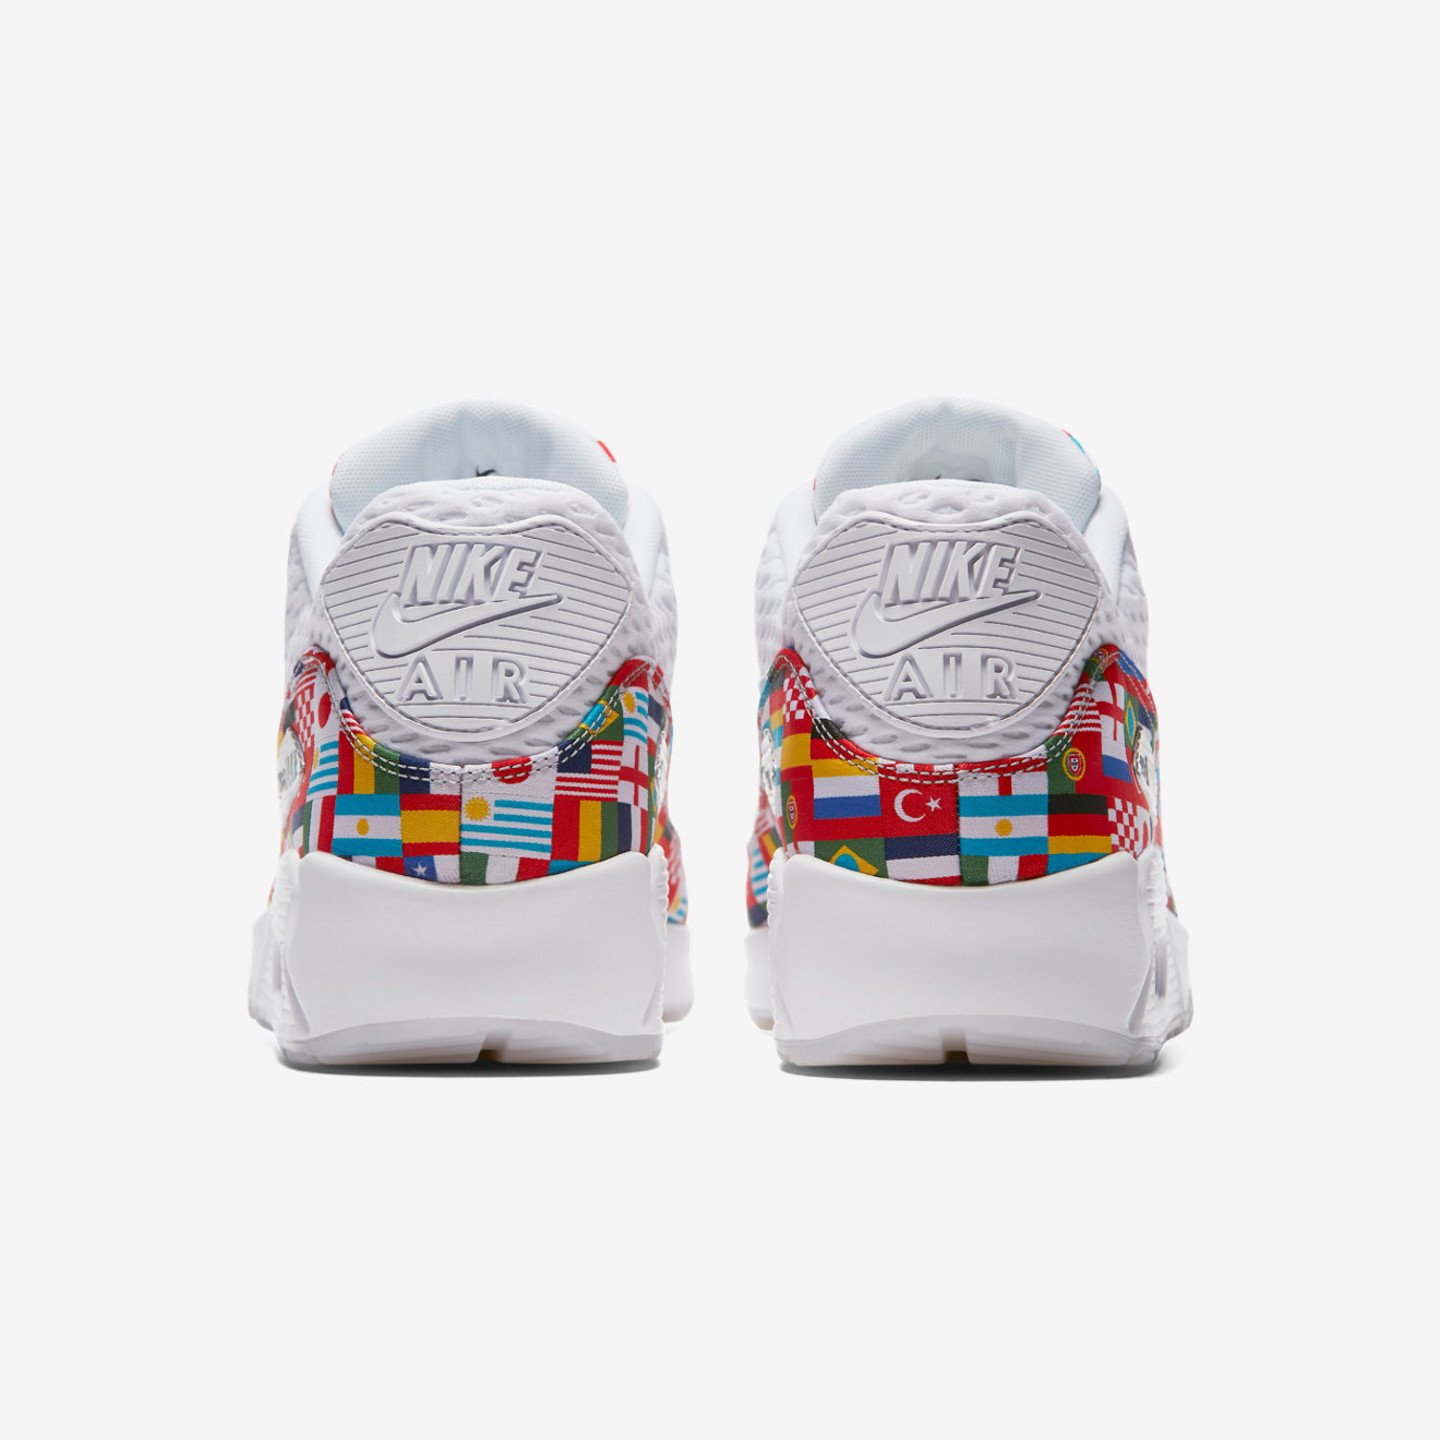 Nike Air Max 90 NIC 'One World' QS White / Multicolor AO5119-100